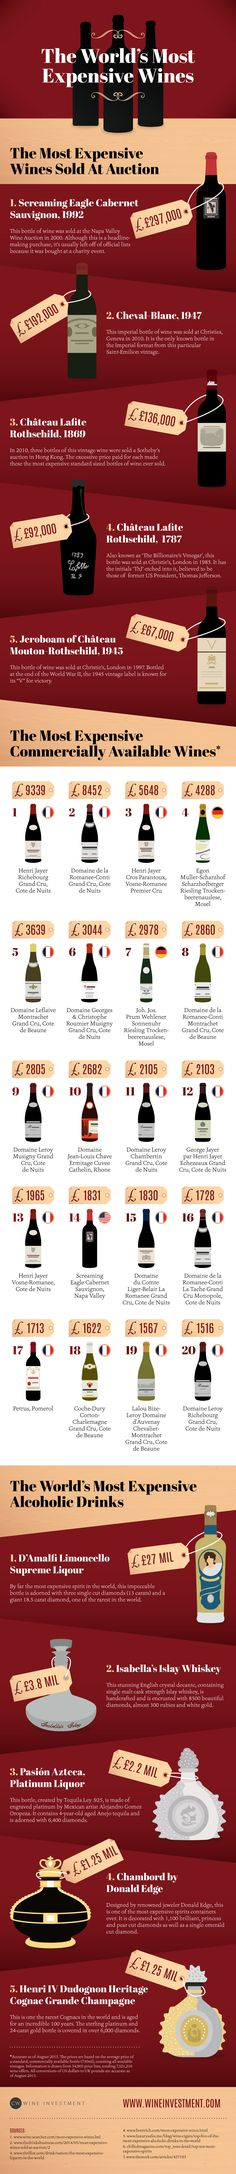 The World's Most Expensive Wines #Infographic #Food #Wine